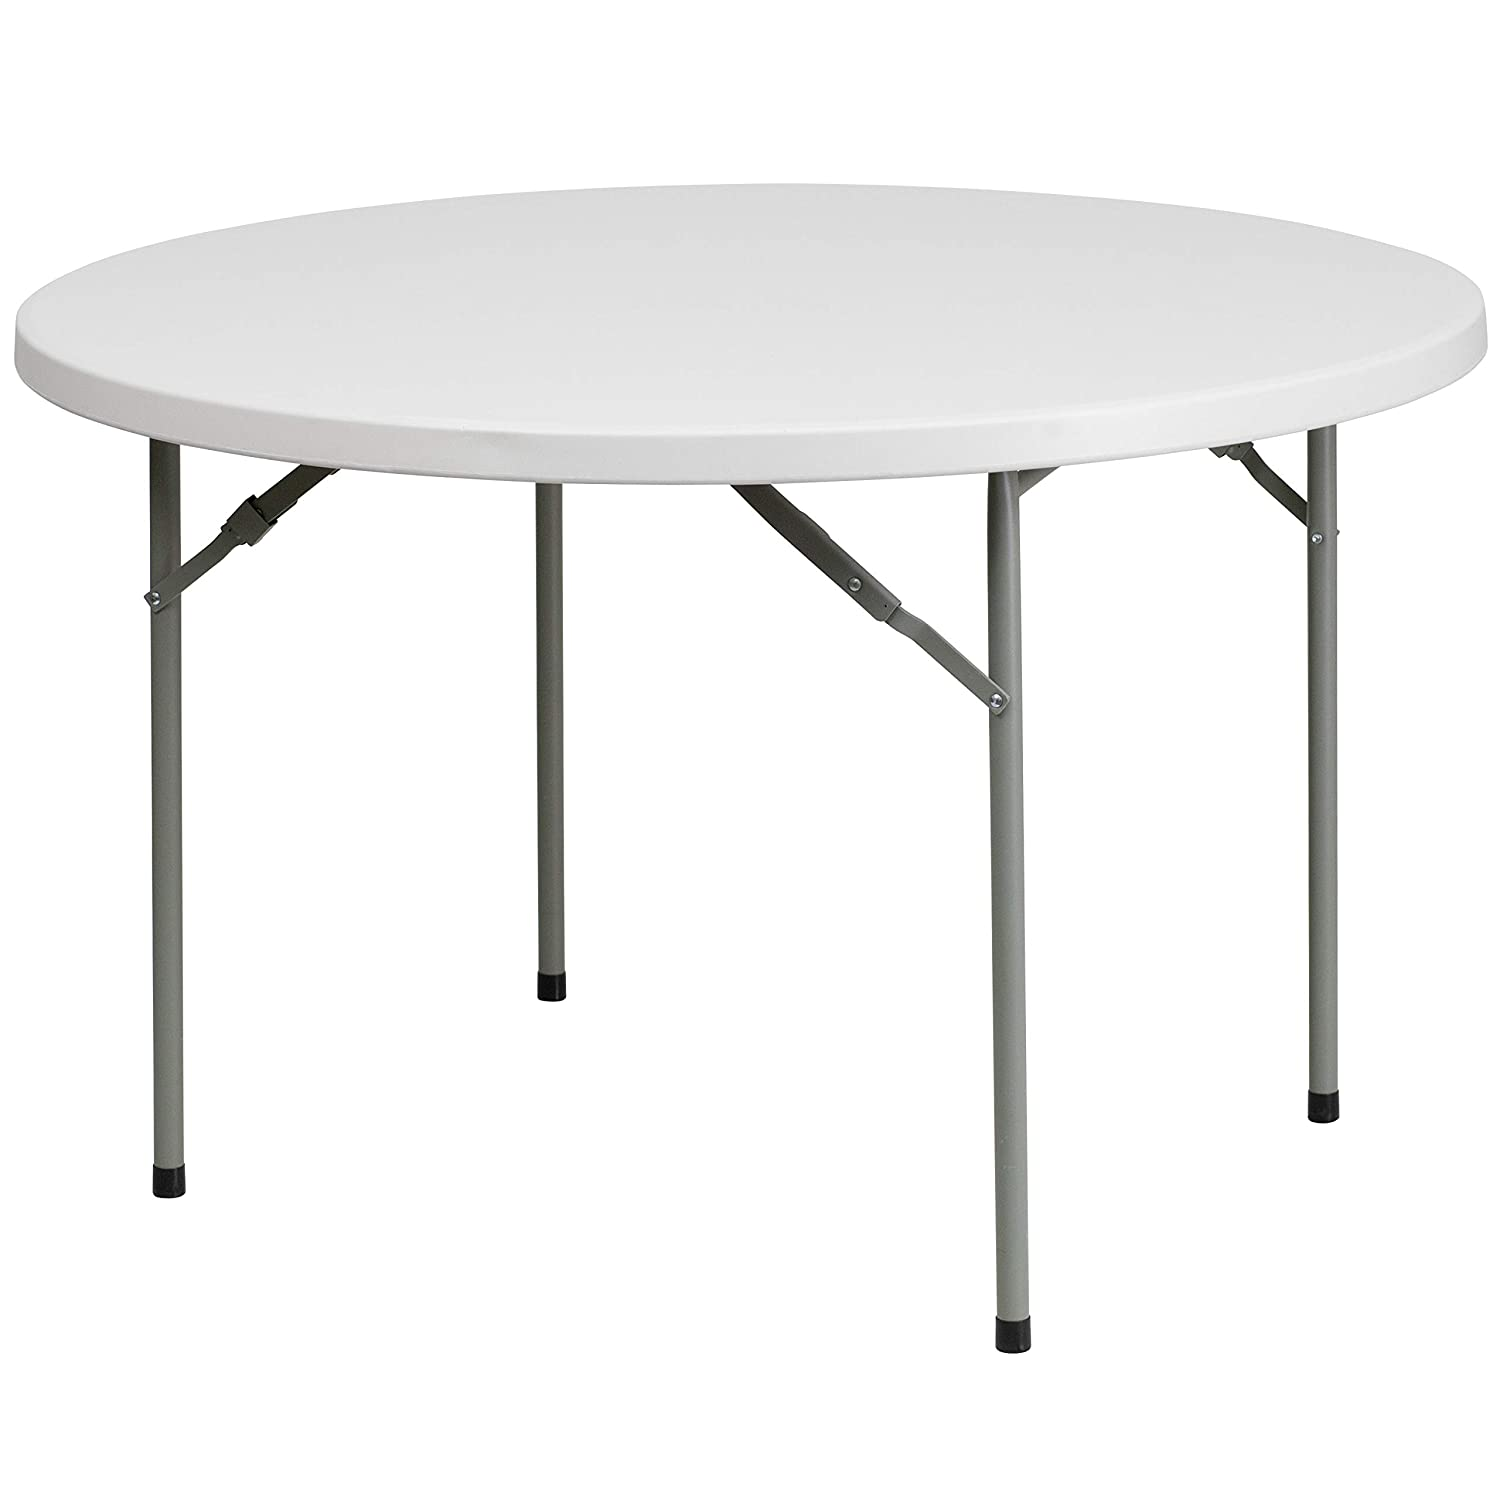 Flash Furniture 48'' Round Granite White Plastic Folding Table [RB-48R-GG]